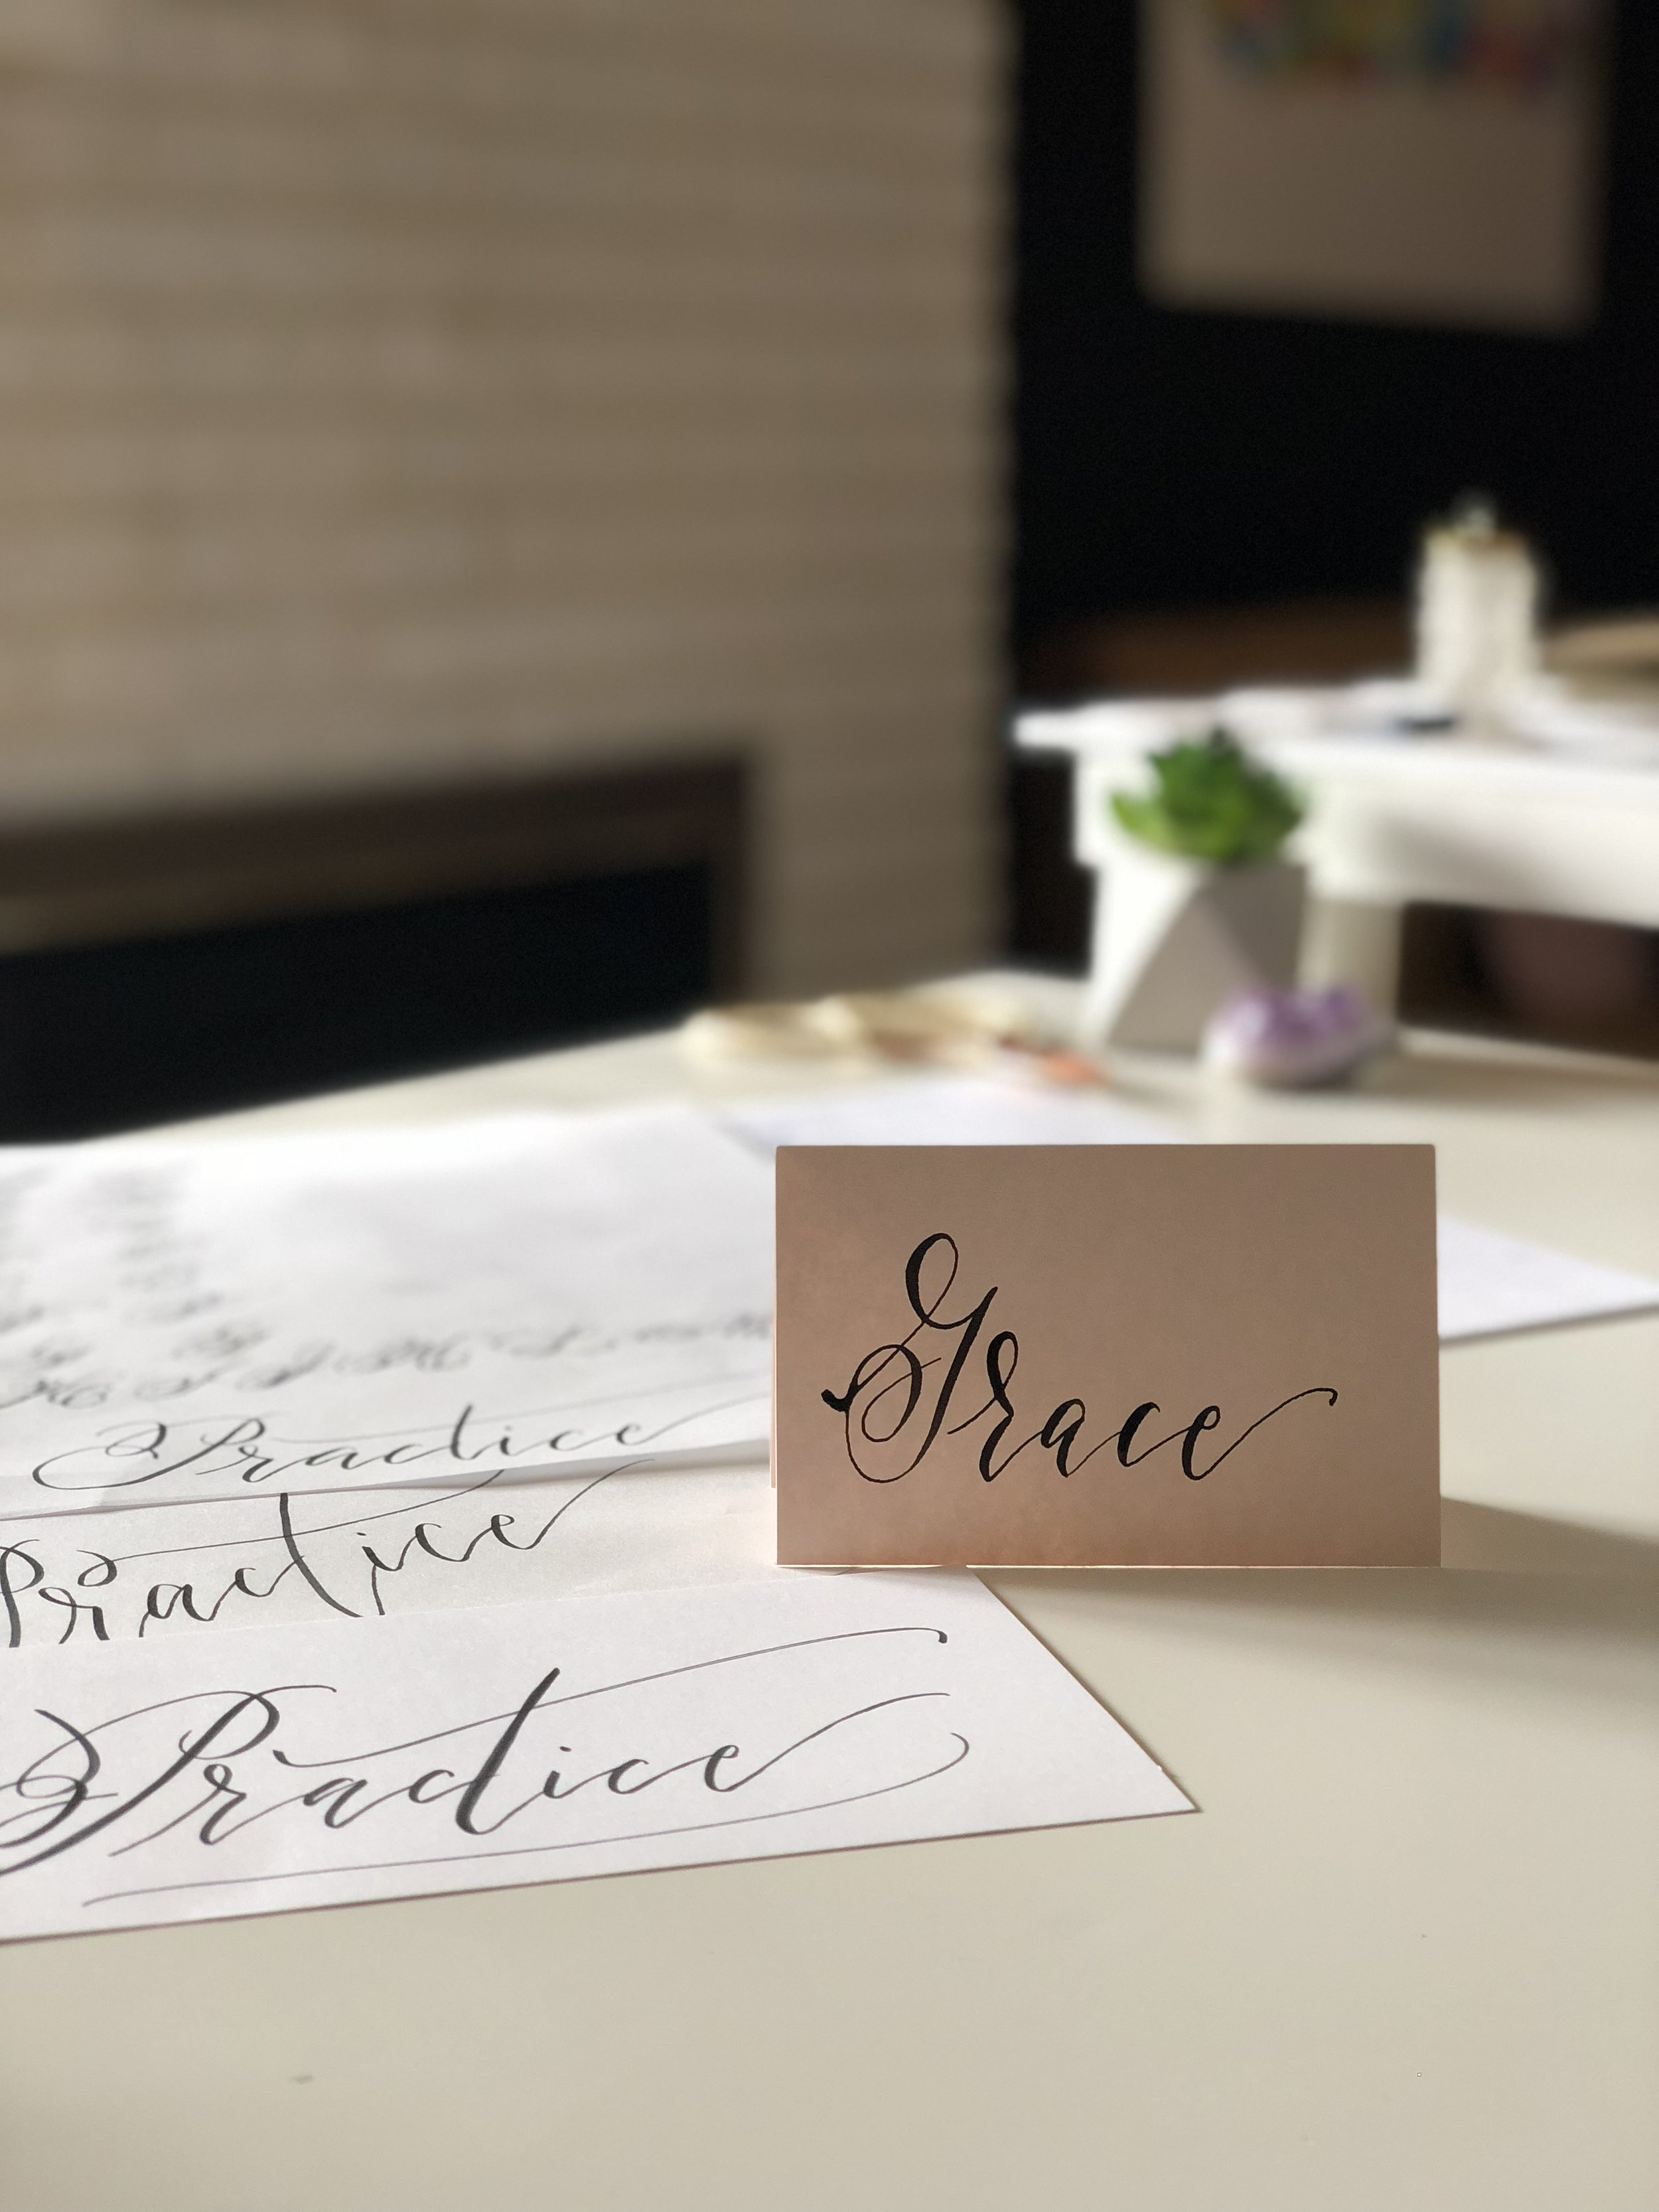 dip pen calligraphy practice sheets by life i design.jpg